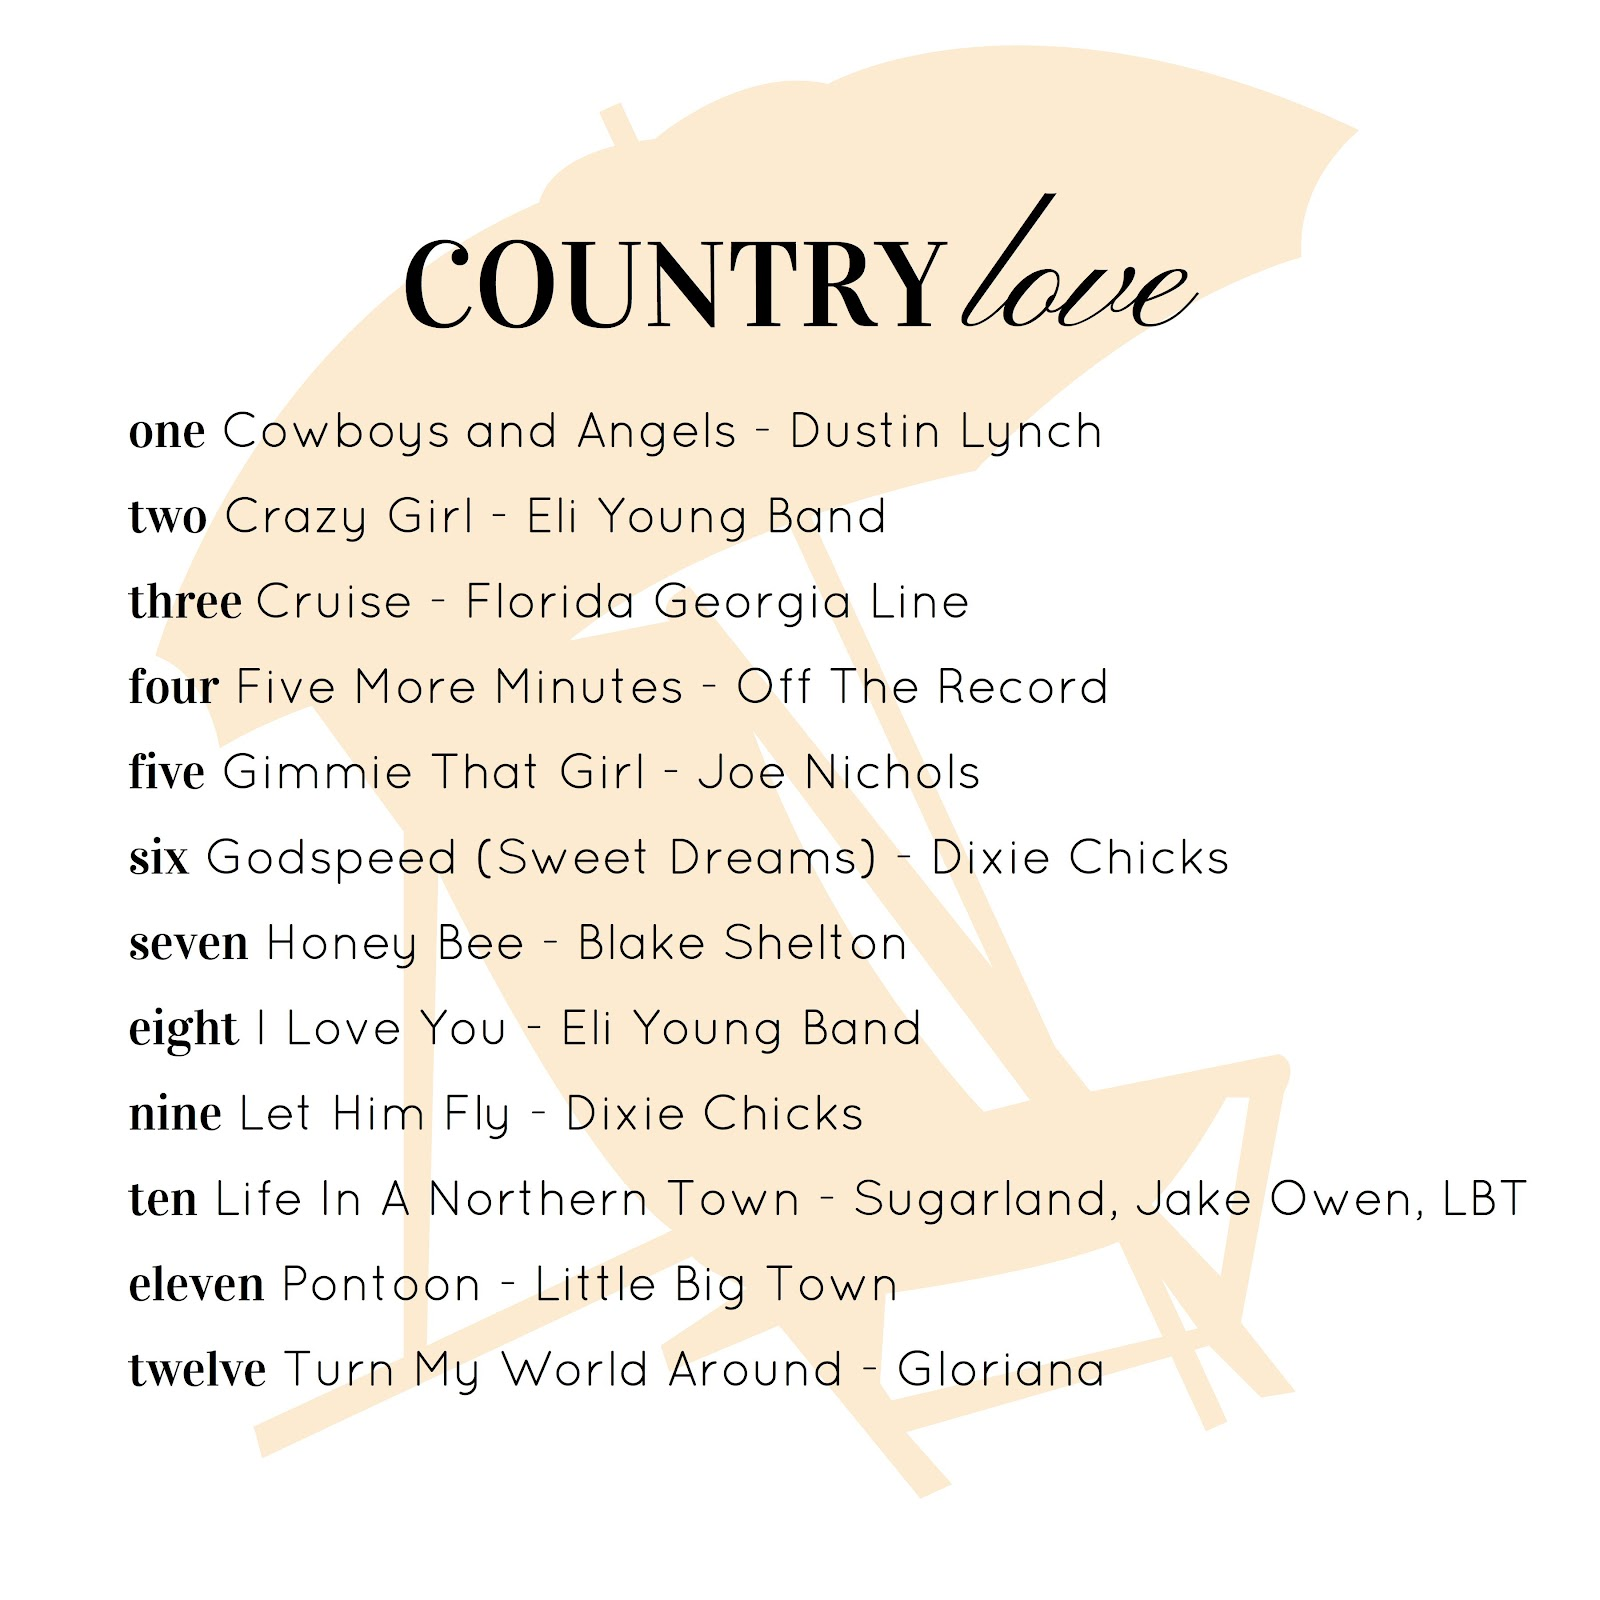 cute country relationship songs 2013